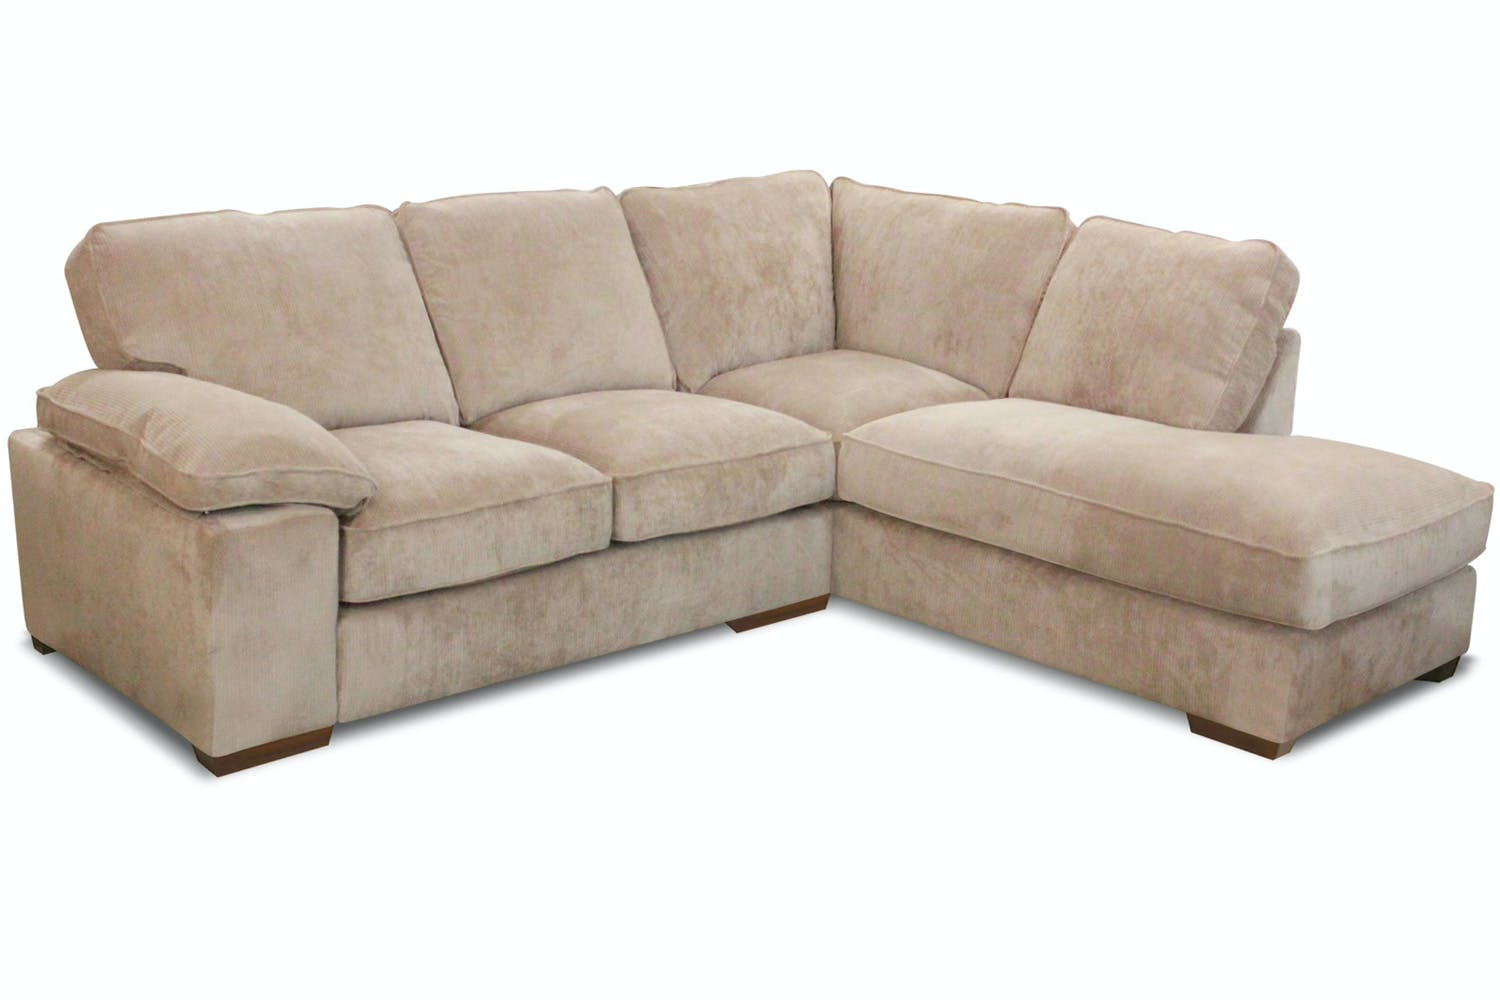 Utah Corner Sofa With Bed